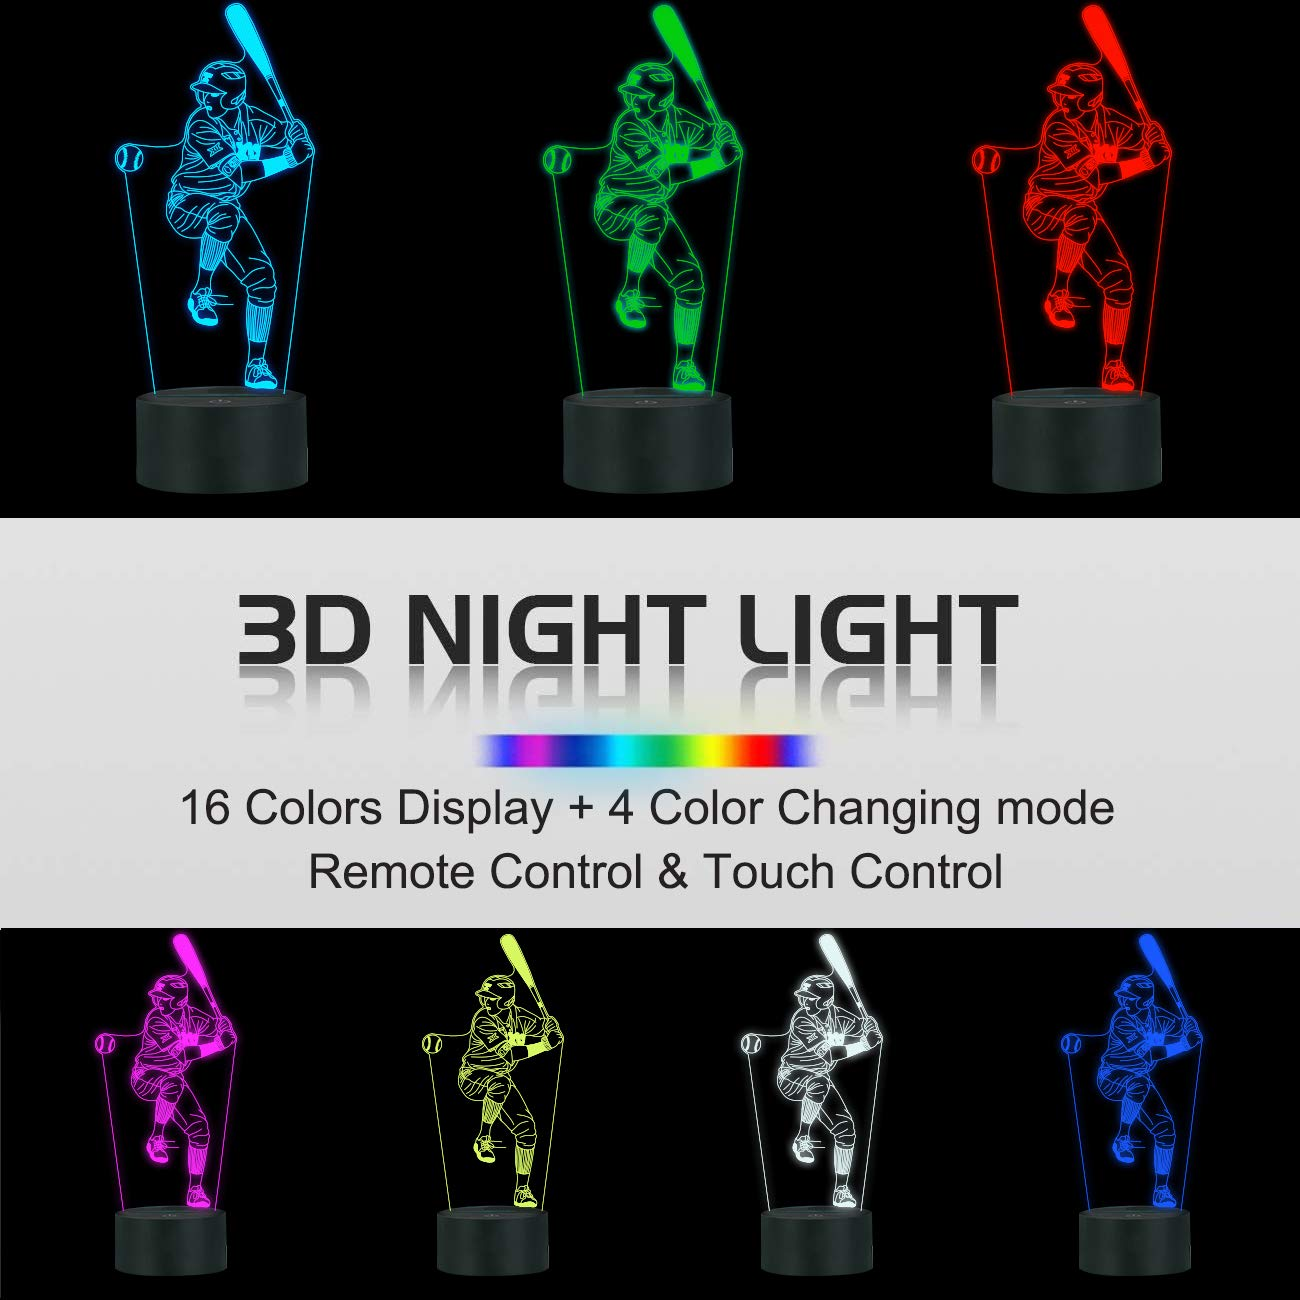 Baseball 3D Night Light for Kids,FULLOSUN Optical Illusion LED Lamp,16 Colors Changing Remote Control Sport Fan Room Decoration Xmas Birthday Gift for Teen Boy Baseball